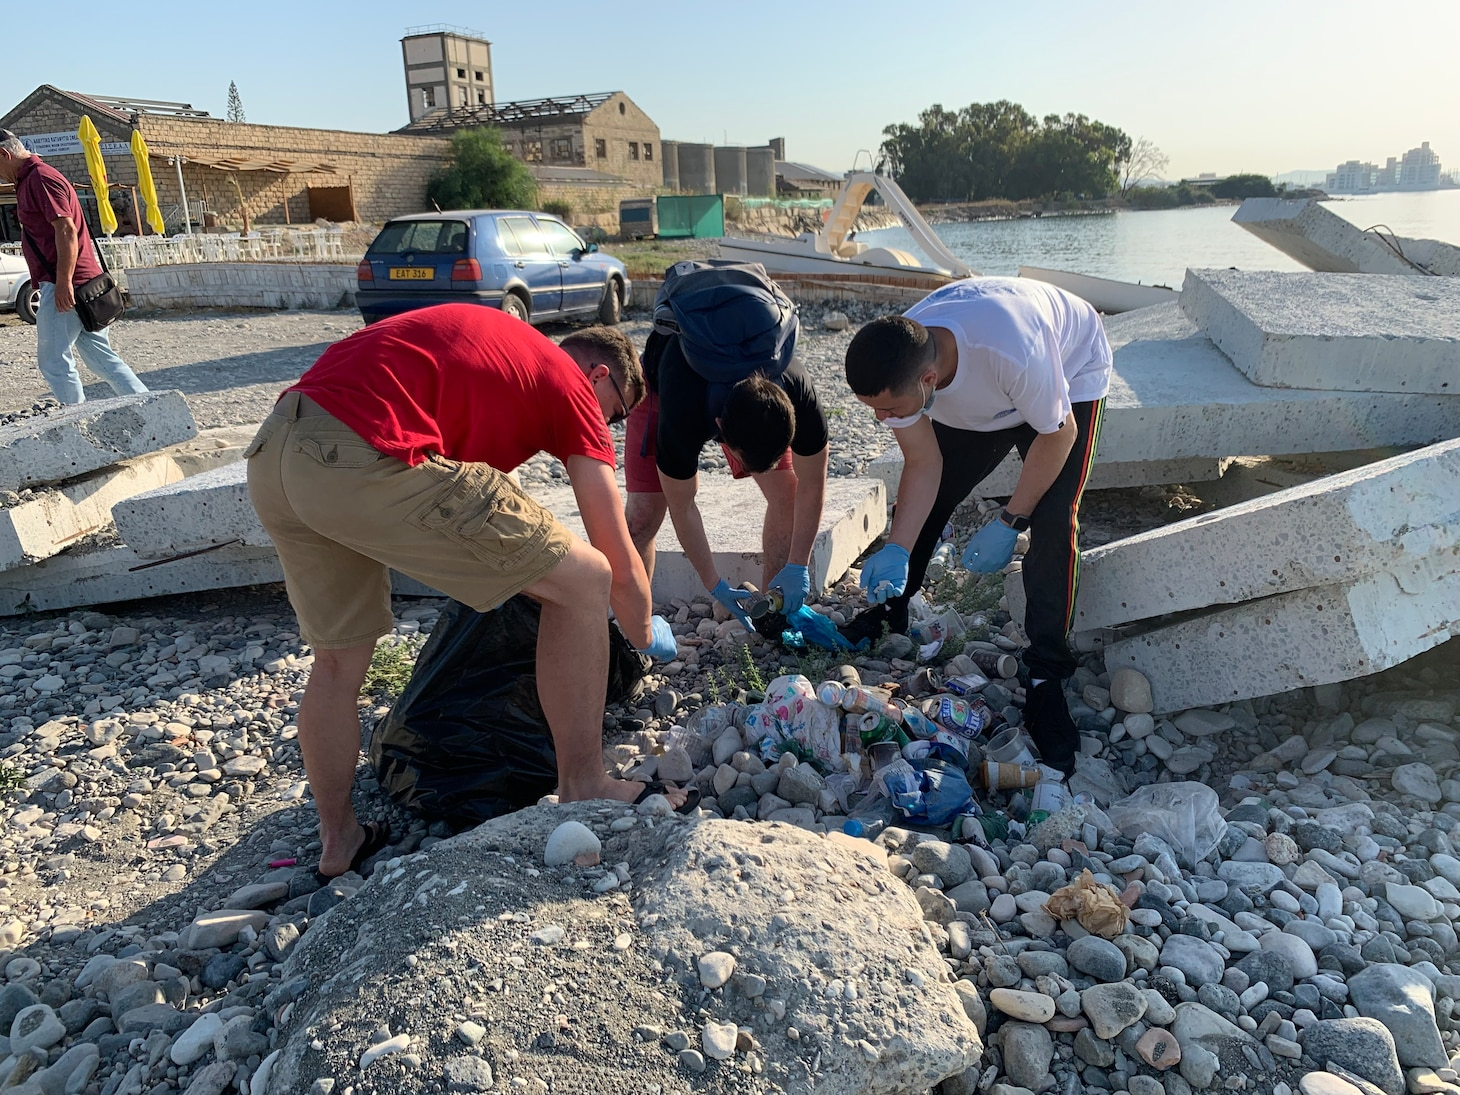 Sailors from Arleigh-Burke class guided missile destroyer USS The Sullivans (DDG 68) participate in a beach cleanup during a scheduled port visit in Limassol, Cyrpus, July 08, 2021.  The Sullivans is on a scheduled deployment with Carrier Strike Group 21. U.S. Sixth Fleet, headquartered in Naples, Italy, conducts the full spectrum of joint and naval operations, often in concert with allied and interagency partners, in order to advance U.S. national interests and security and stability in Europe and Africa.